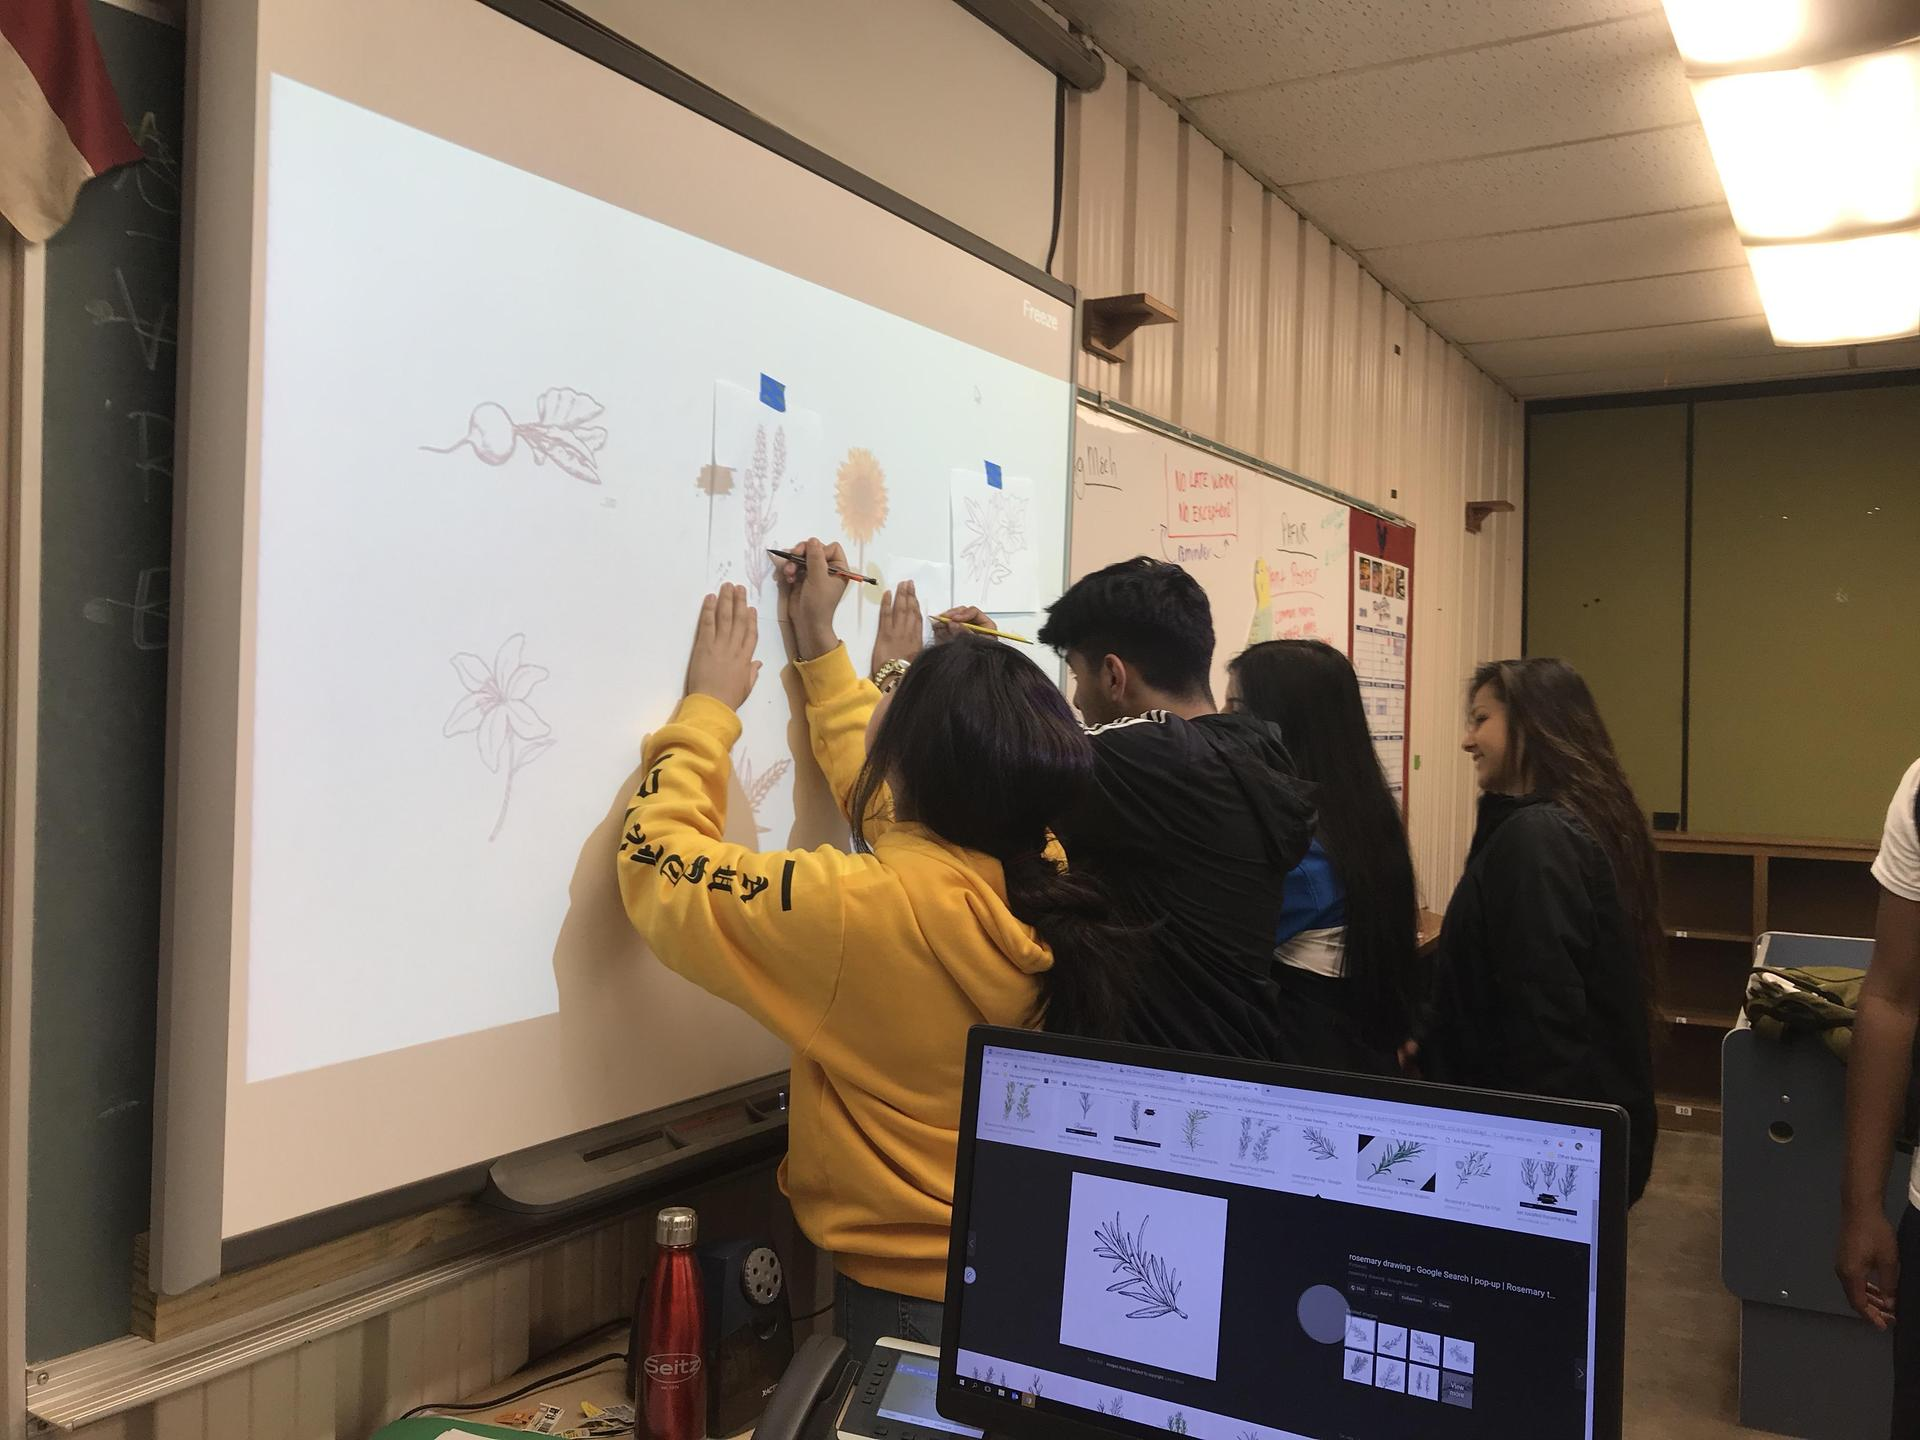 Students work on project